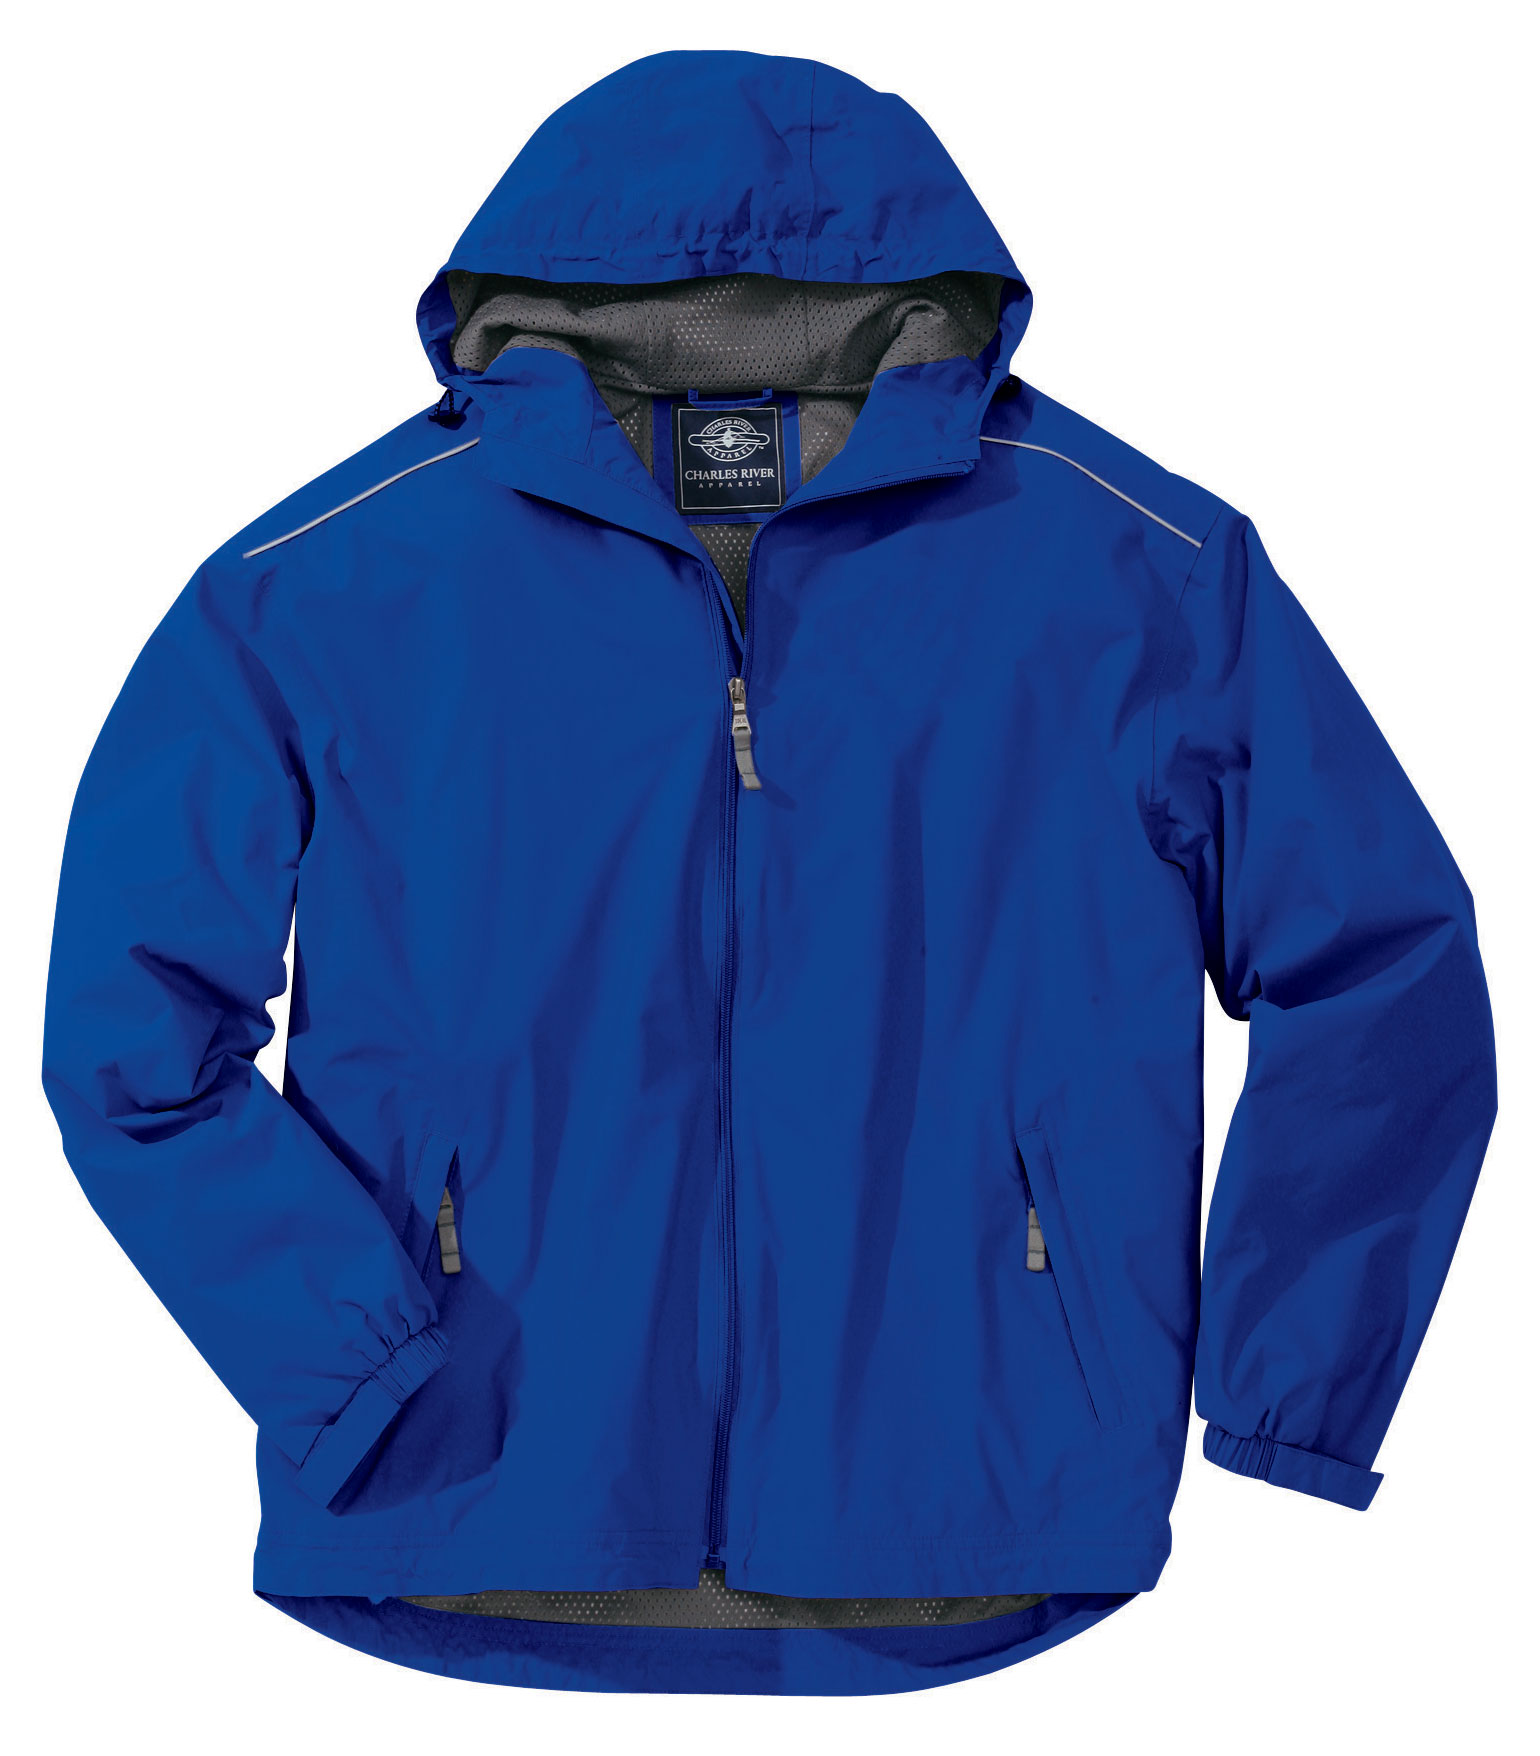 Charles River Mens Noreaster Jacket